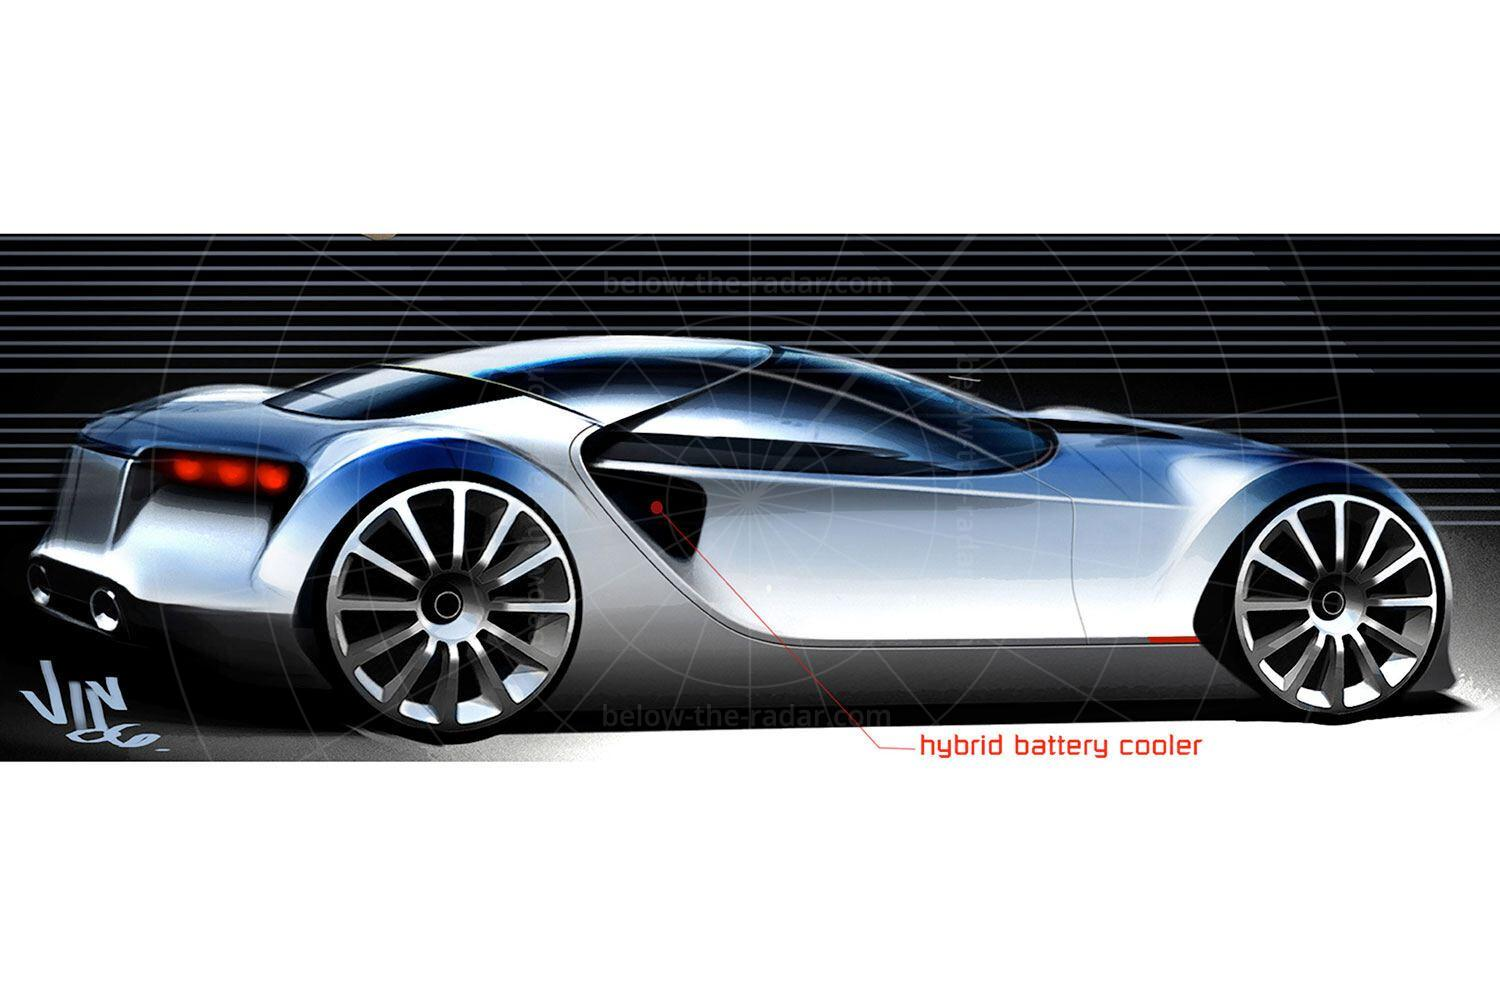 Toyota FT-HS concept design sketch Pic: Toyota   Toyota FT-HS concept design sketch